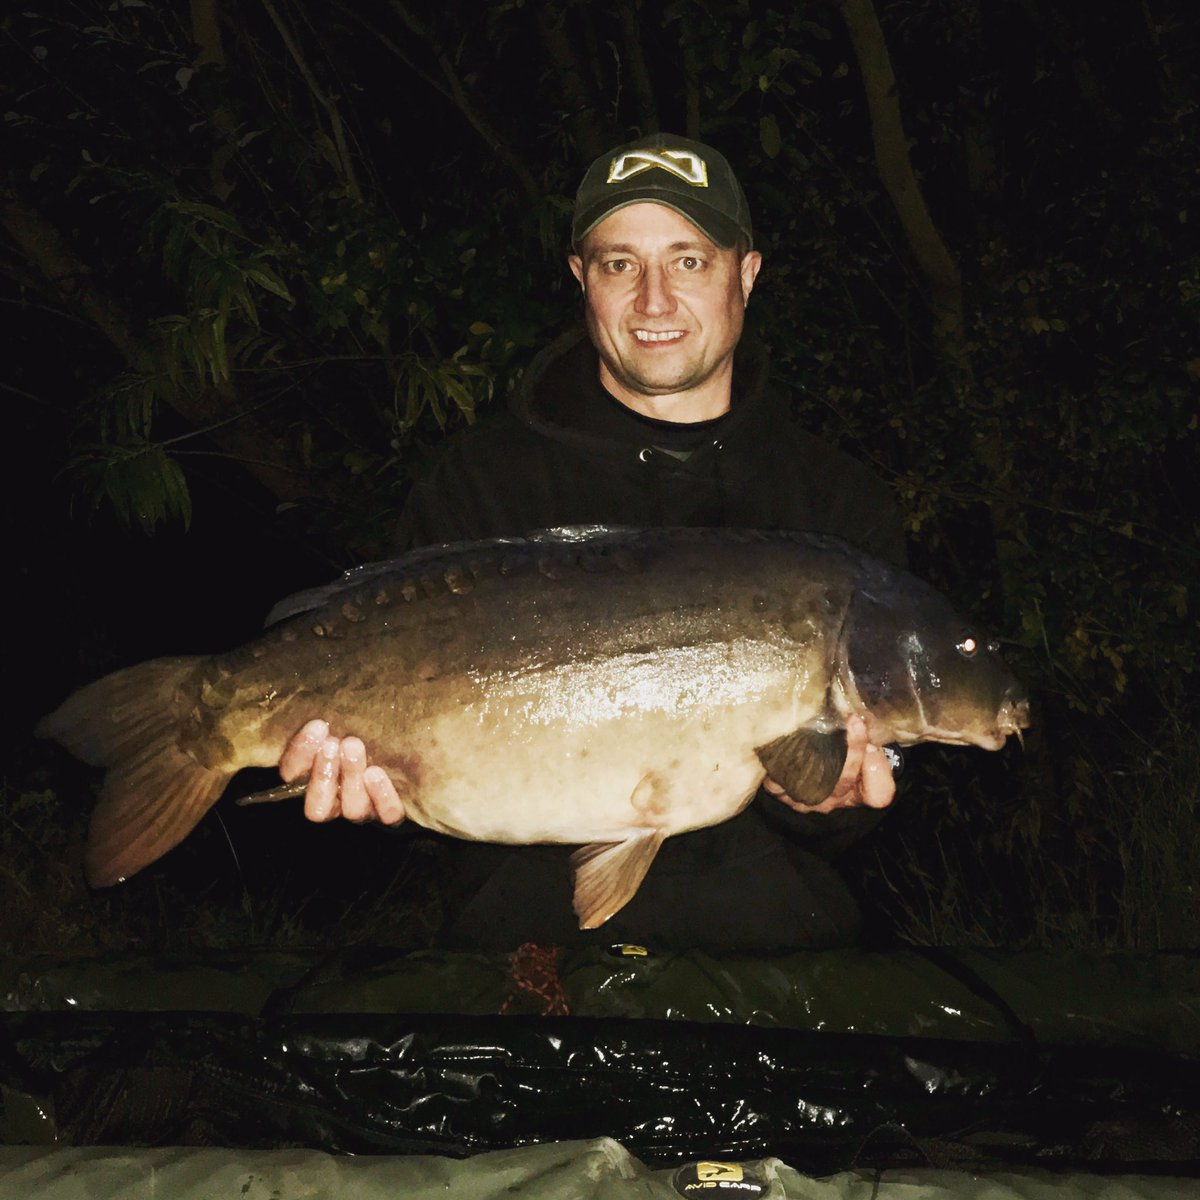 First time out carping for a while and managed to nab one! #<b>Happyday</b>s #carpfishing https://t.